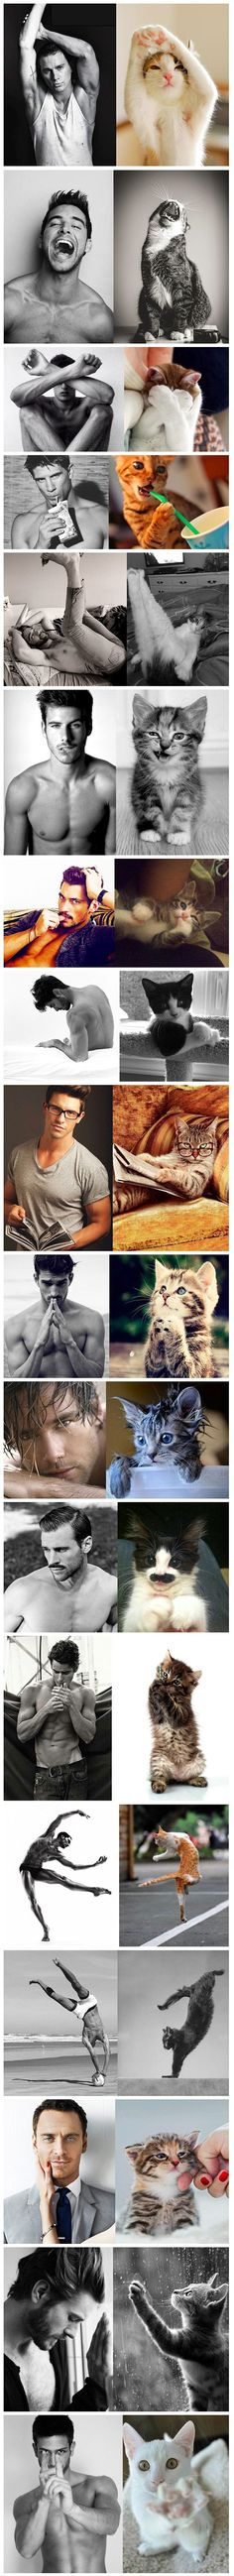 Des Hommes et Des Chatons (Men and Cats) is a single-topic blog that pairs similar photos of attractive men with pictures of adorable cats. The brilliant match-ups feature a variety of heartthrobs (including celebrities like Channing Tatum and Michael Fassbender) posing seductively alongside shots of cuddly felines striking a pose that makes the viewer question which subject theyre more interested in looking at.